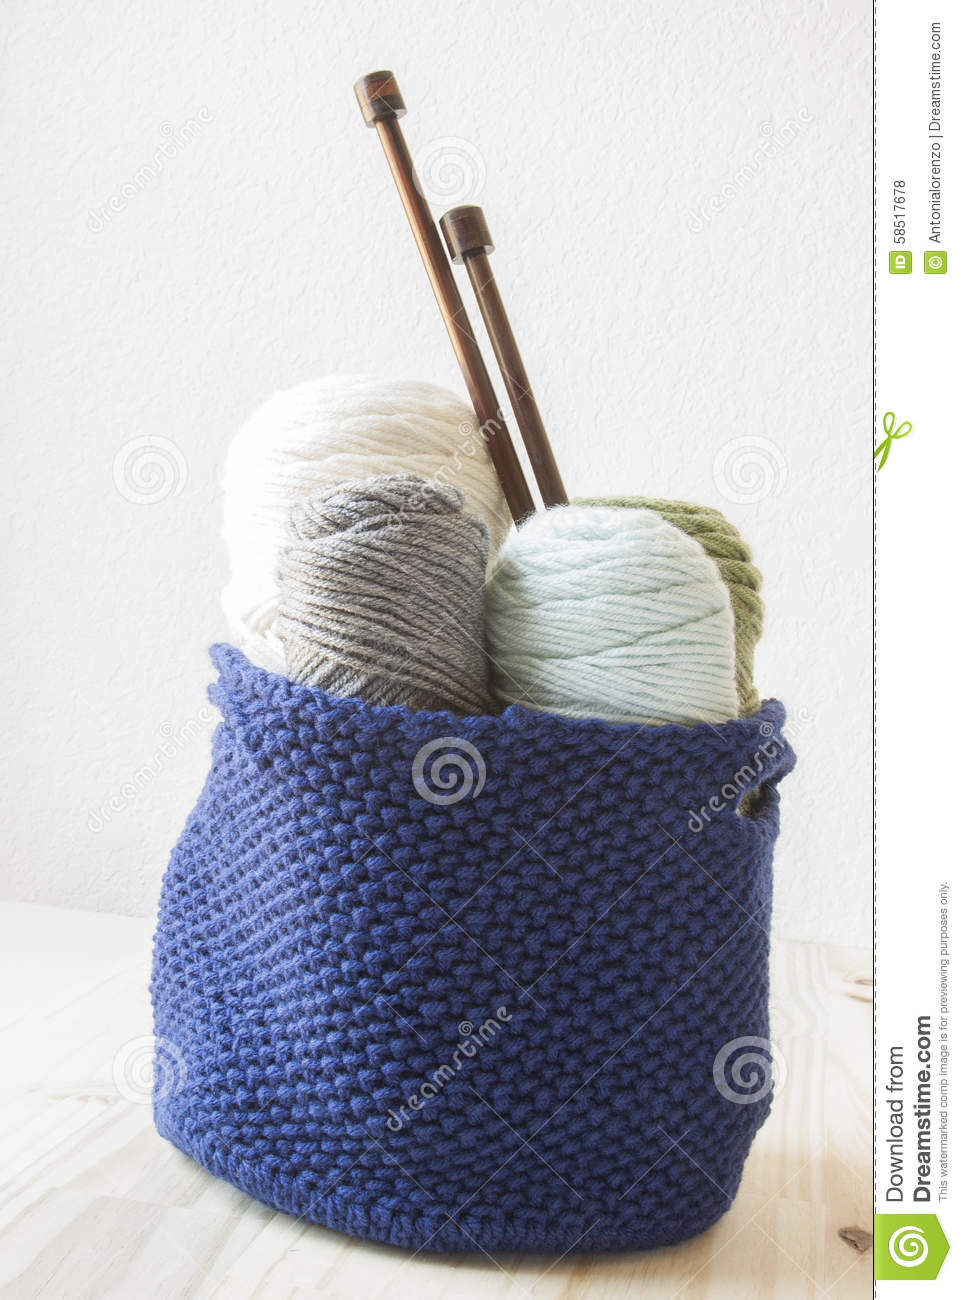 Kitting Yarn Stock Photo Image Of Wooden Cable Home 58517678